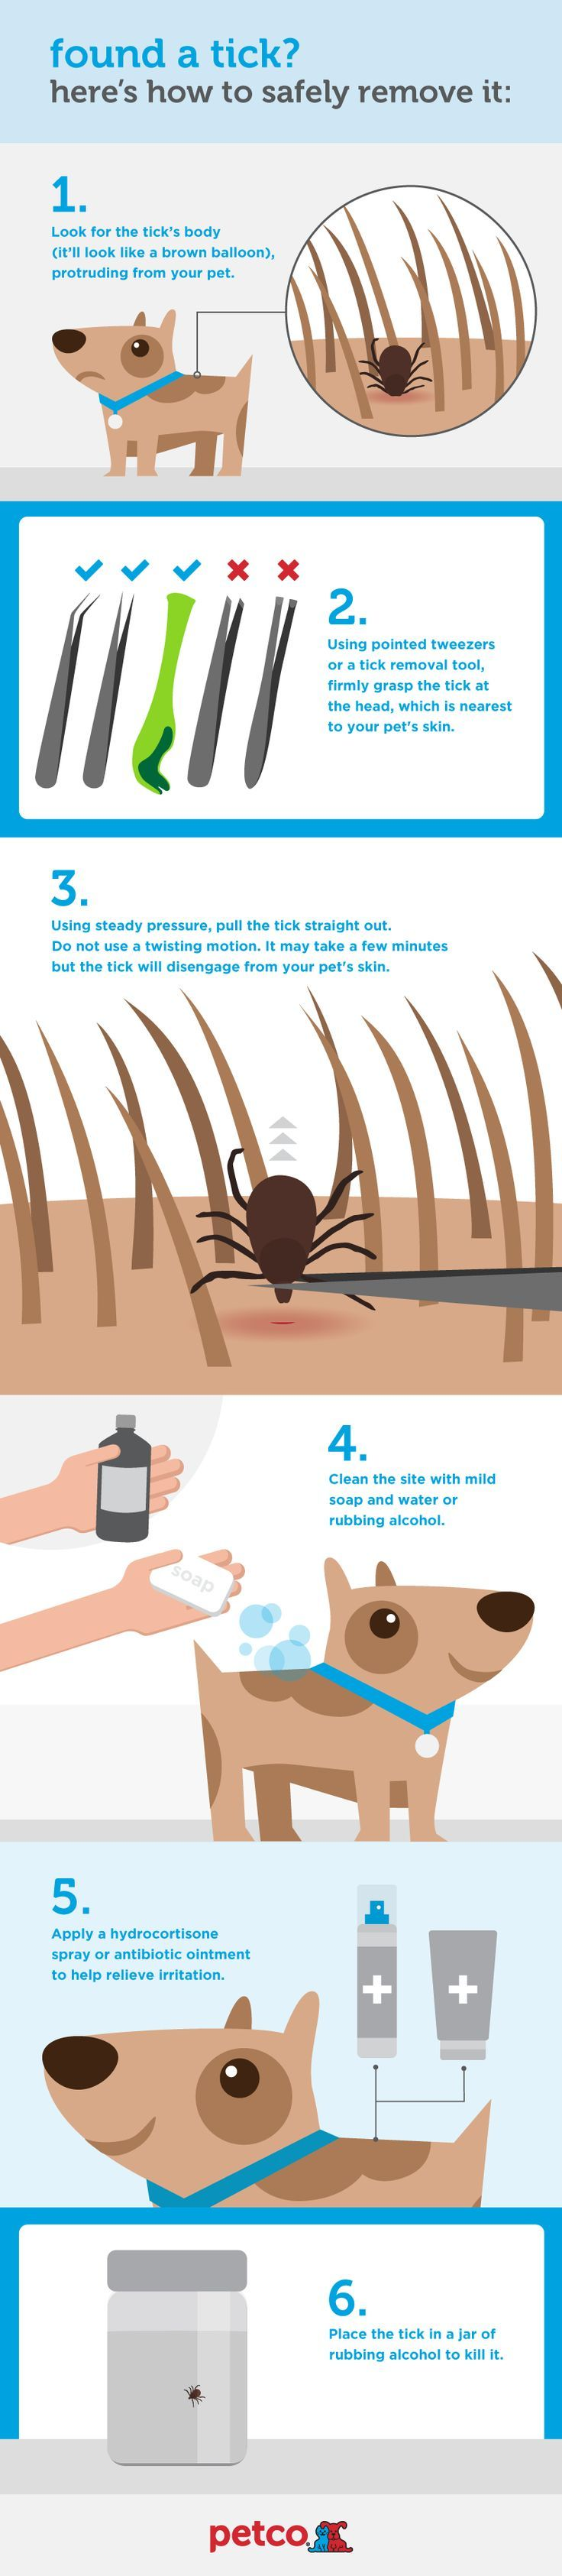 Found a tick on your pug heres the safe way to remove it